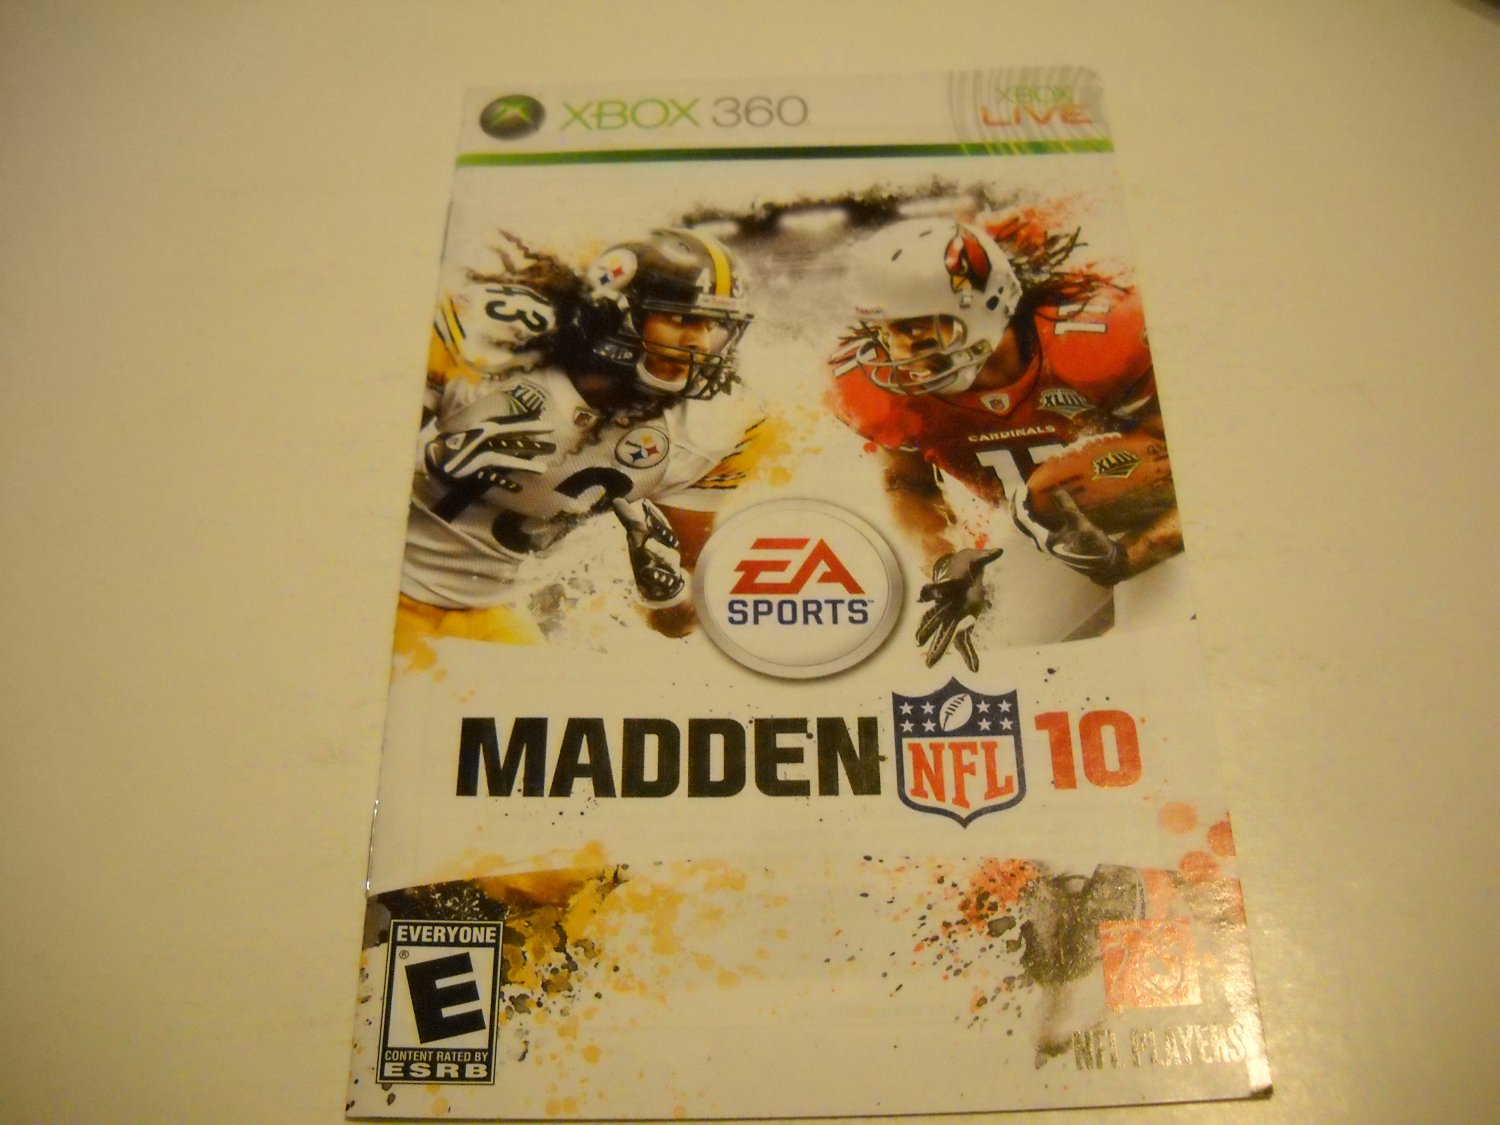 Manual ONLY ~  for Madden NFL 10   - Xbox 360 Instruction Booklet